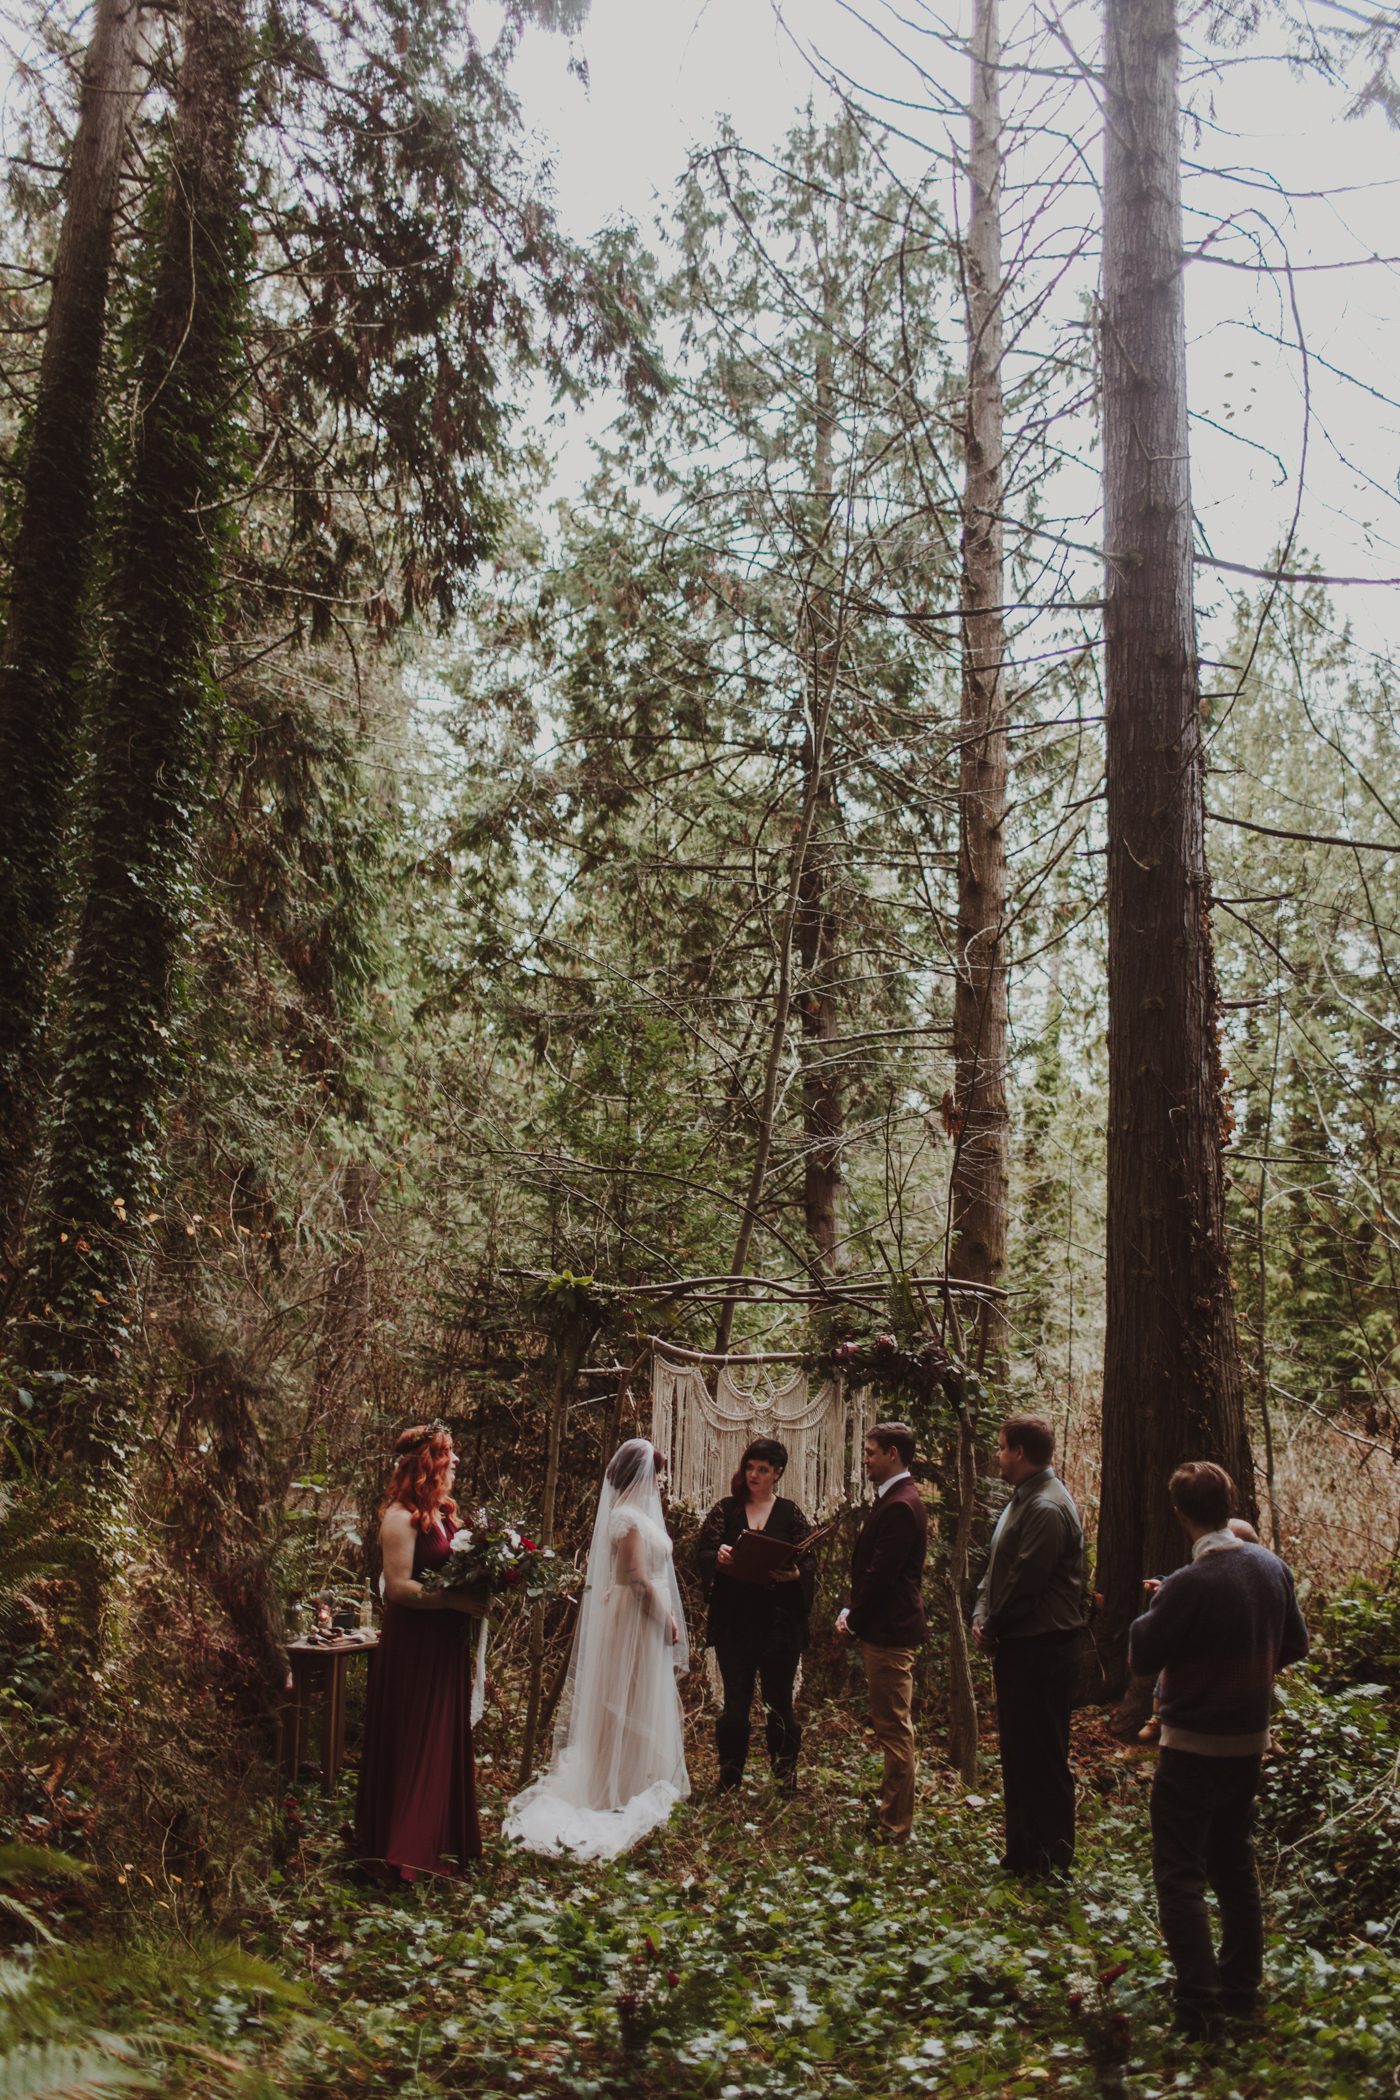 Olympic Peninsula Elopement-LizMorrow-57.jpg